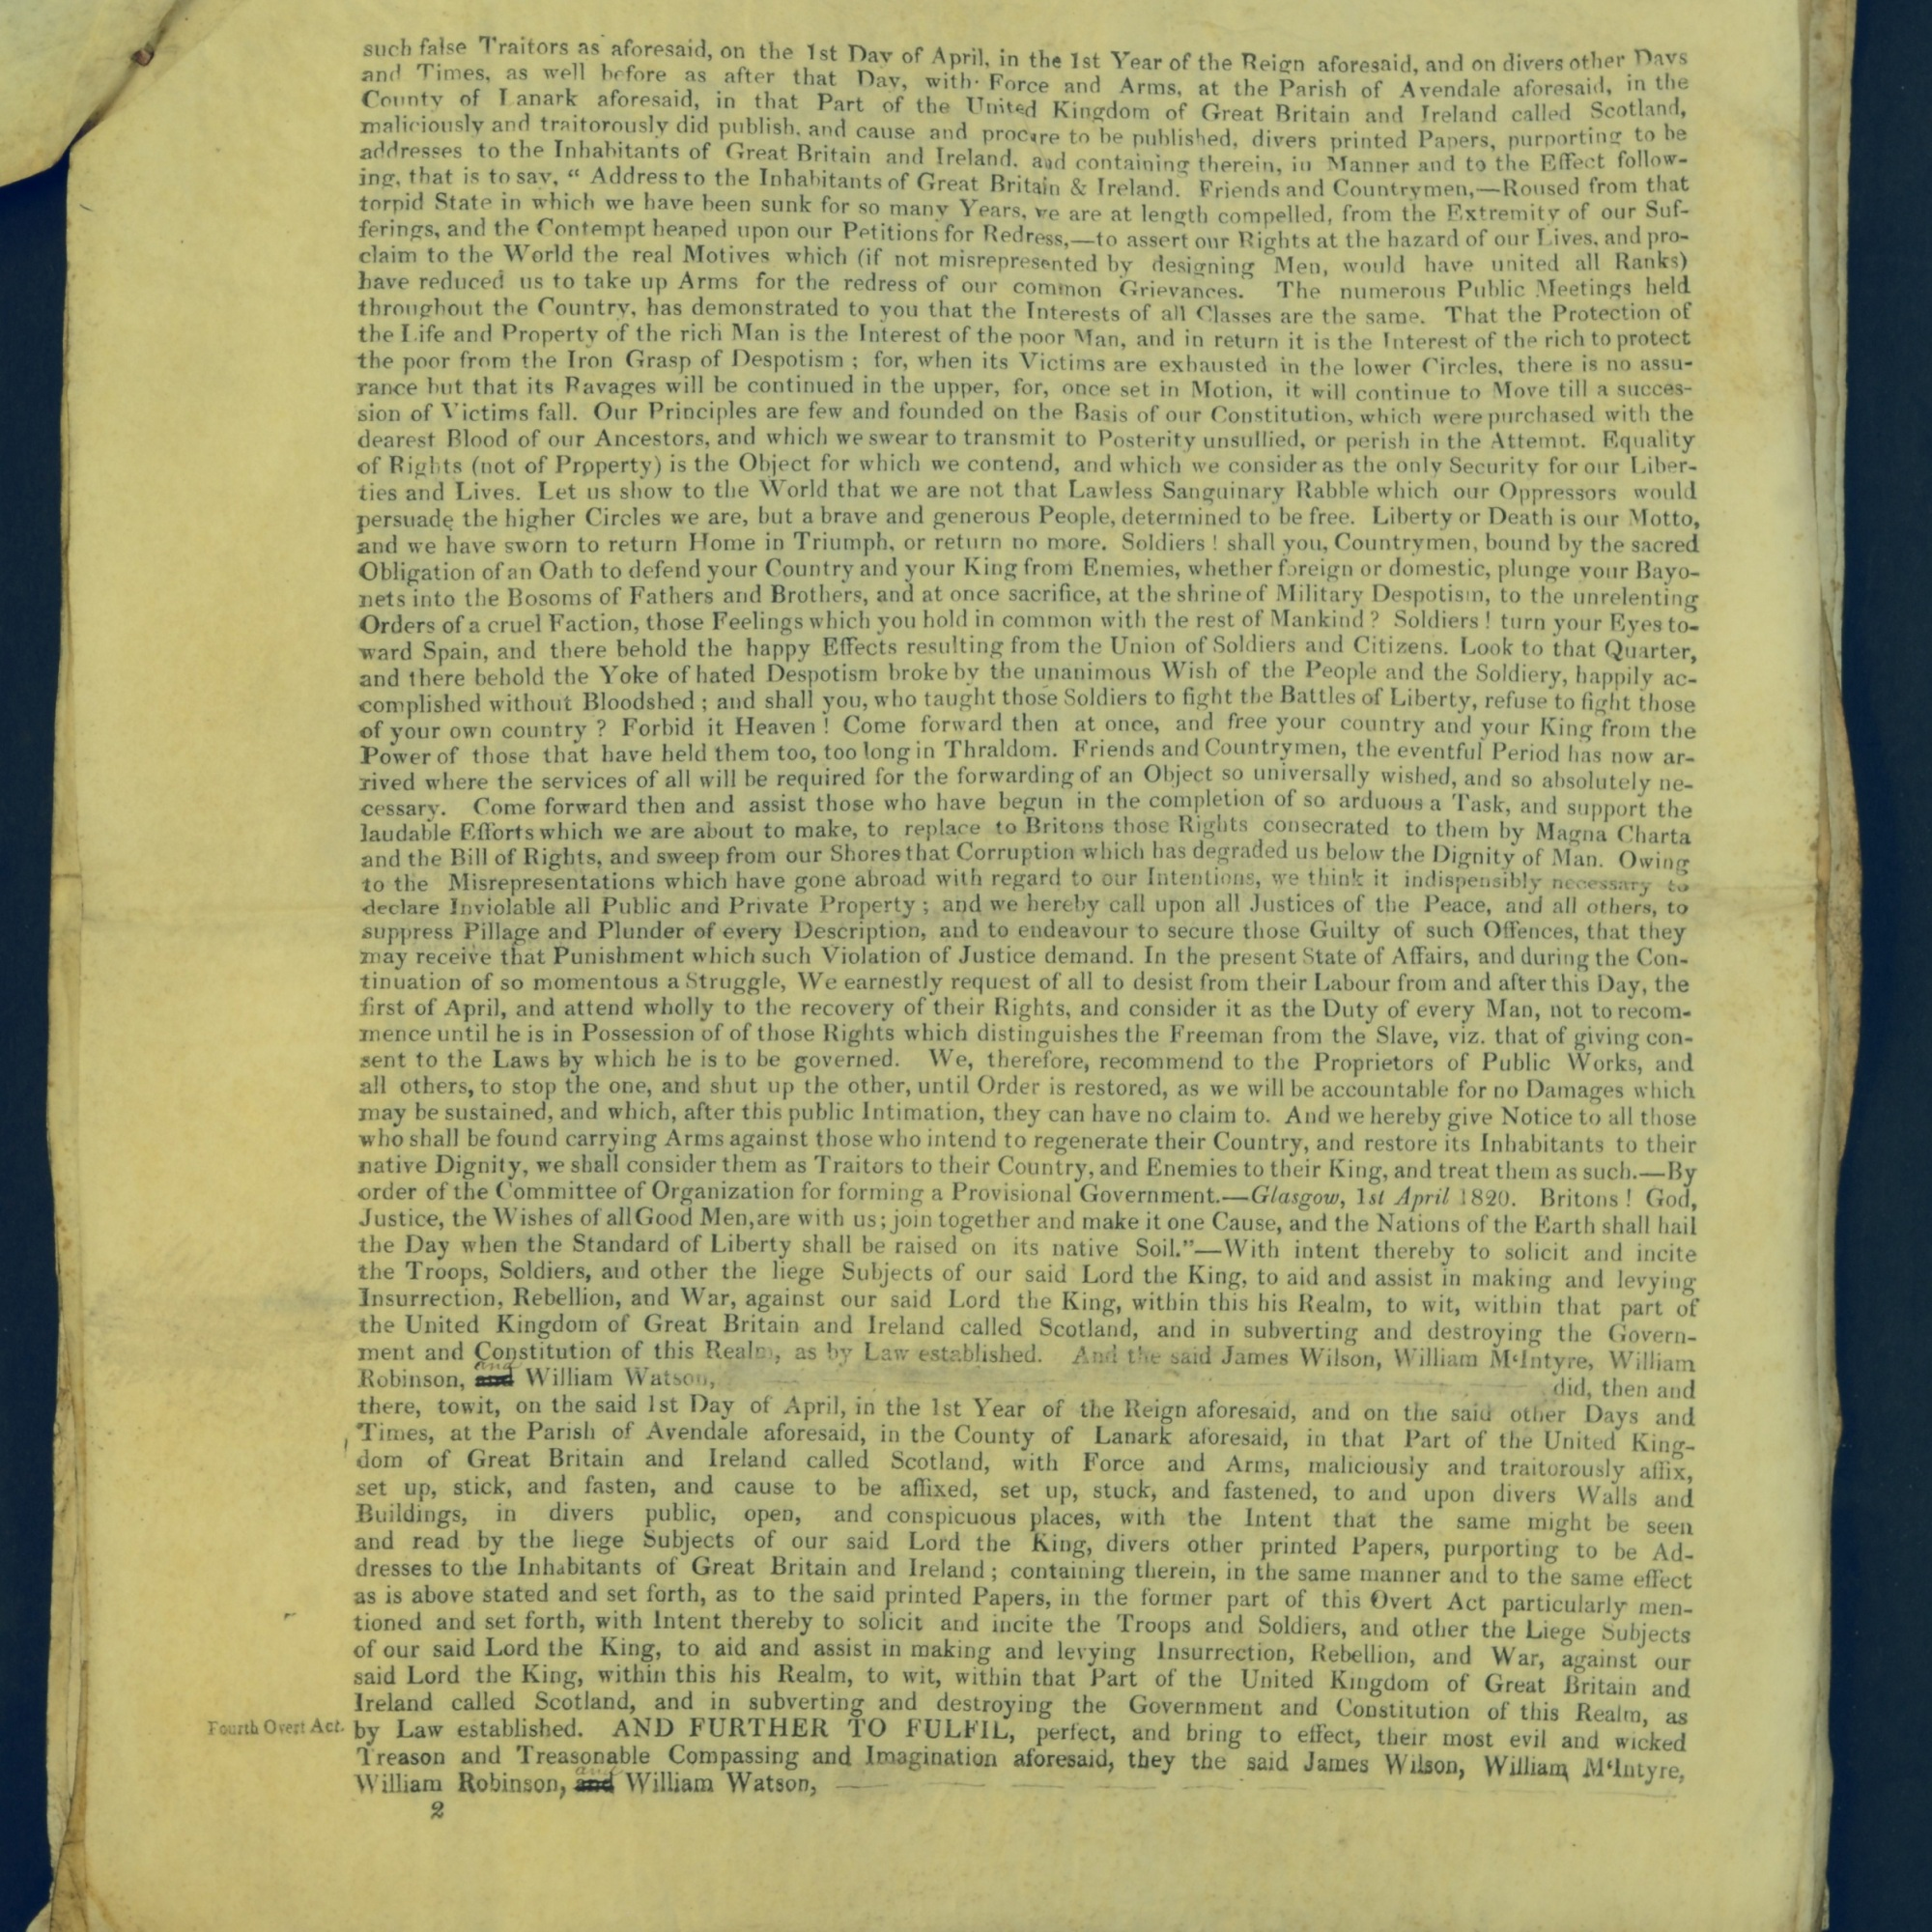 Treason Trials for the County of Lanark, the Strathaven Case. True bills found against four men, James Wilson, William McIntyre, William Robinson and William Watson. National Records of Scotland, Crown copyright, JC21/3/4 p2